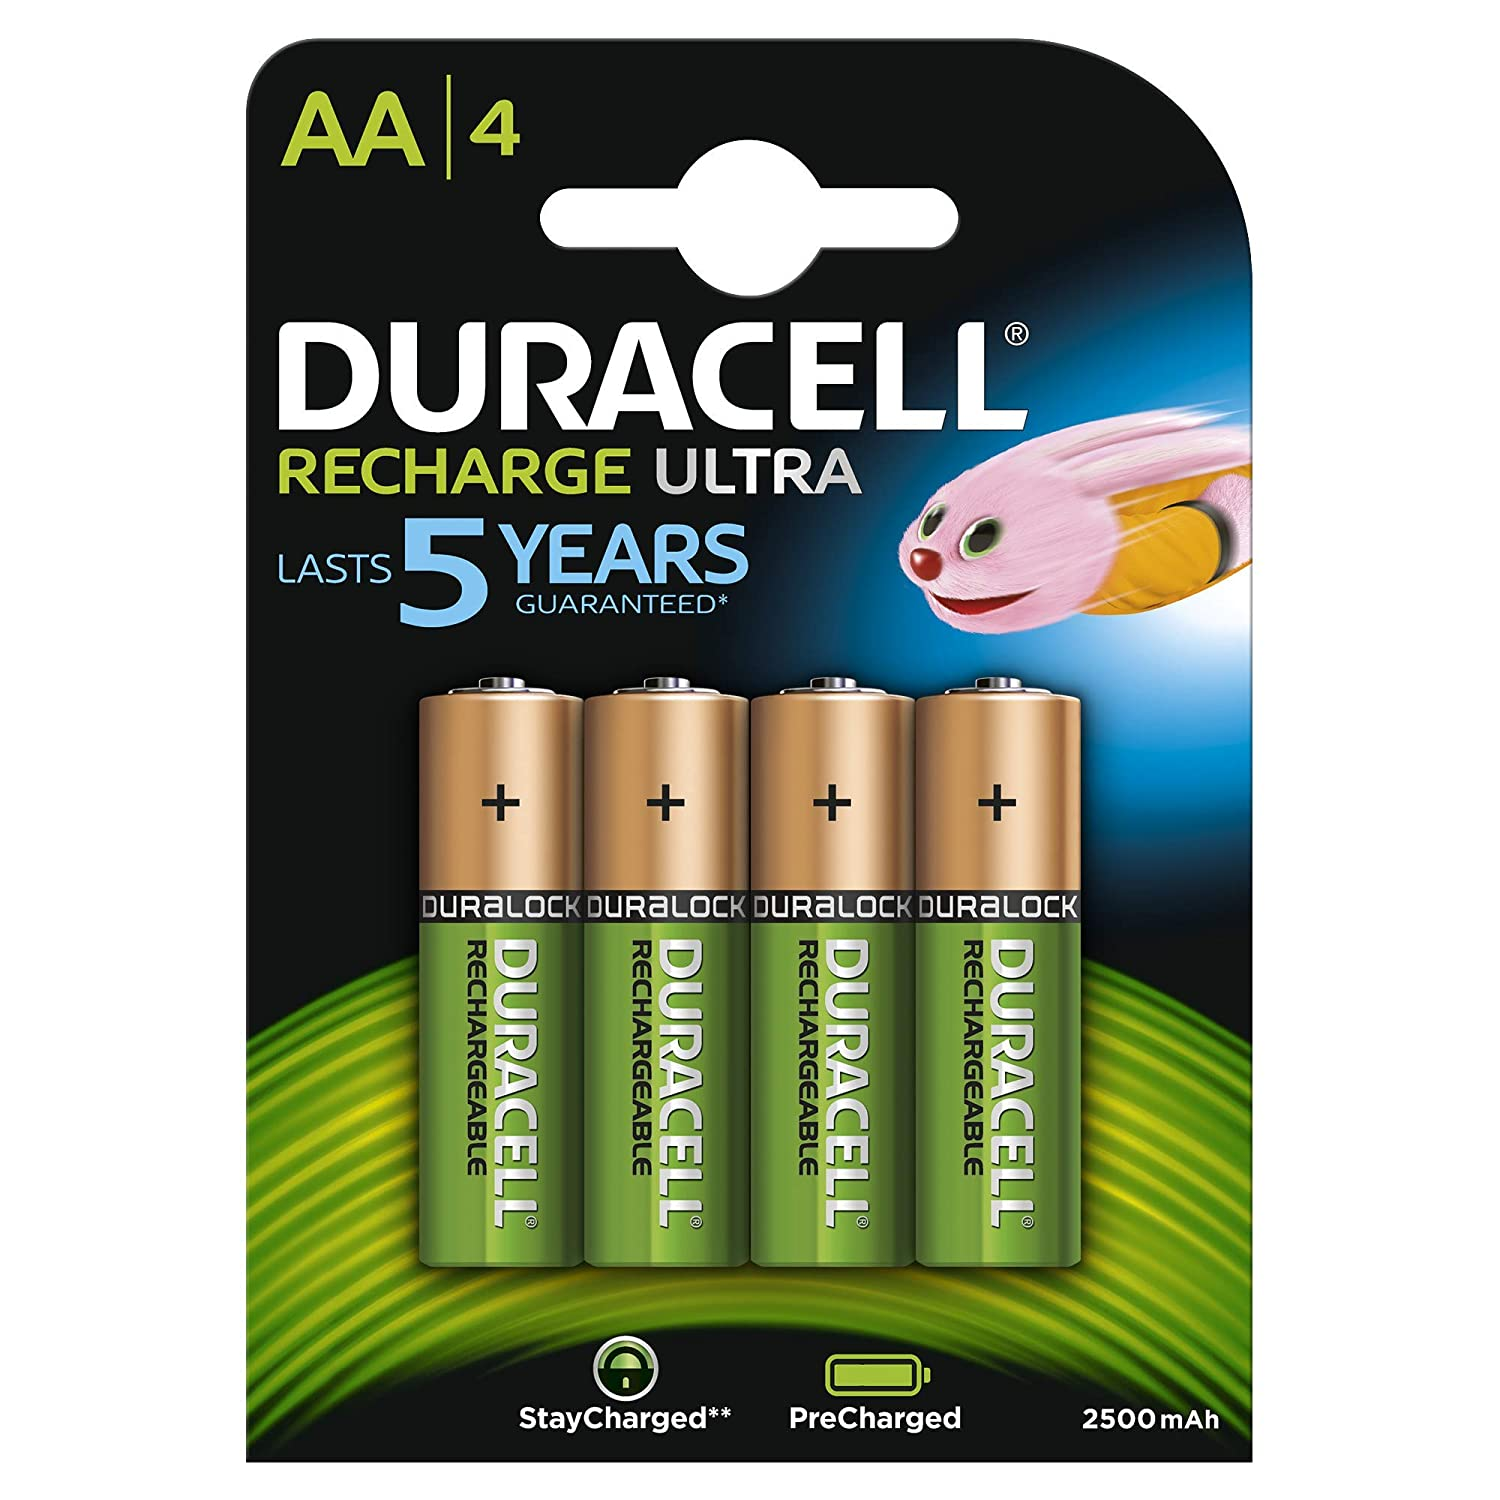 Duracell Ultra 5000688 AA Rechargeable Batteries 2500 mAh